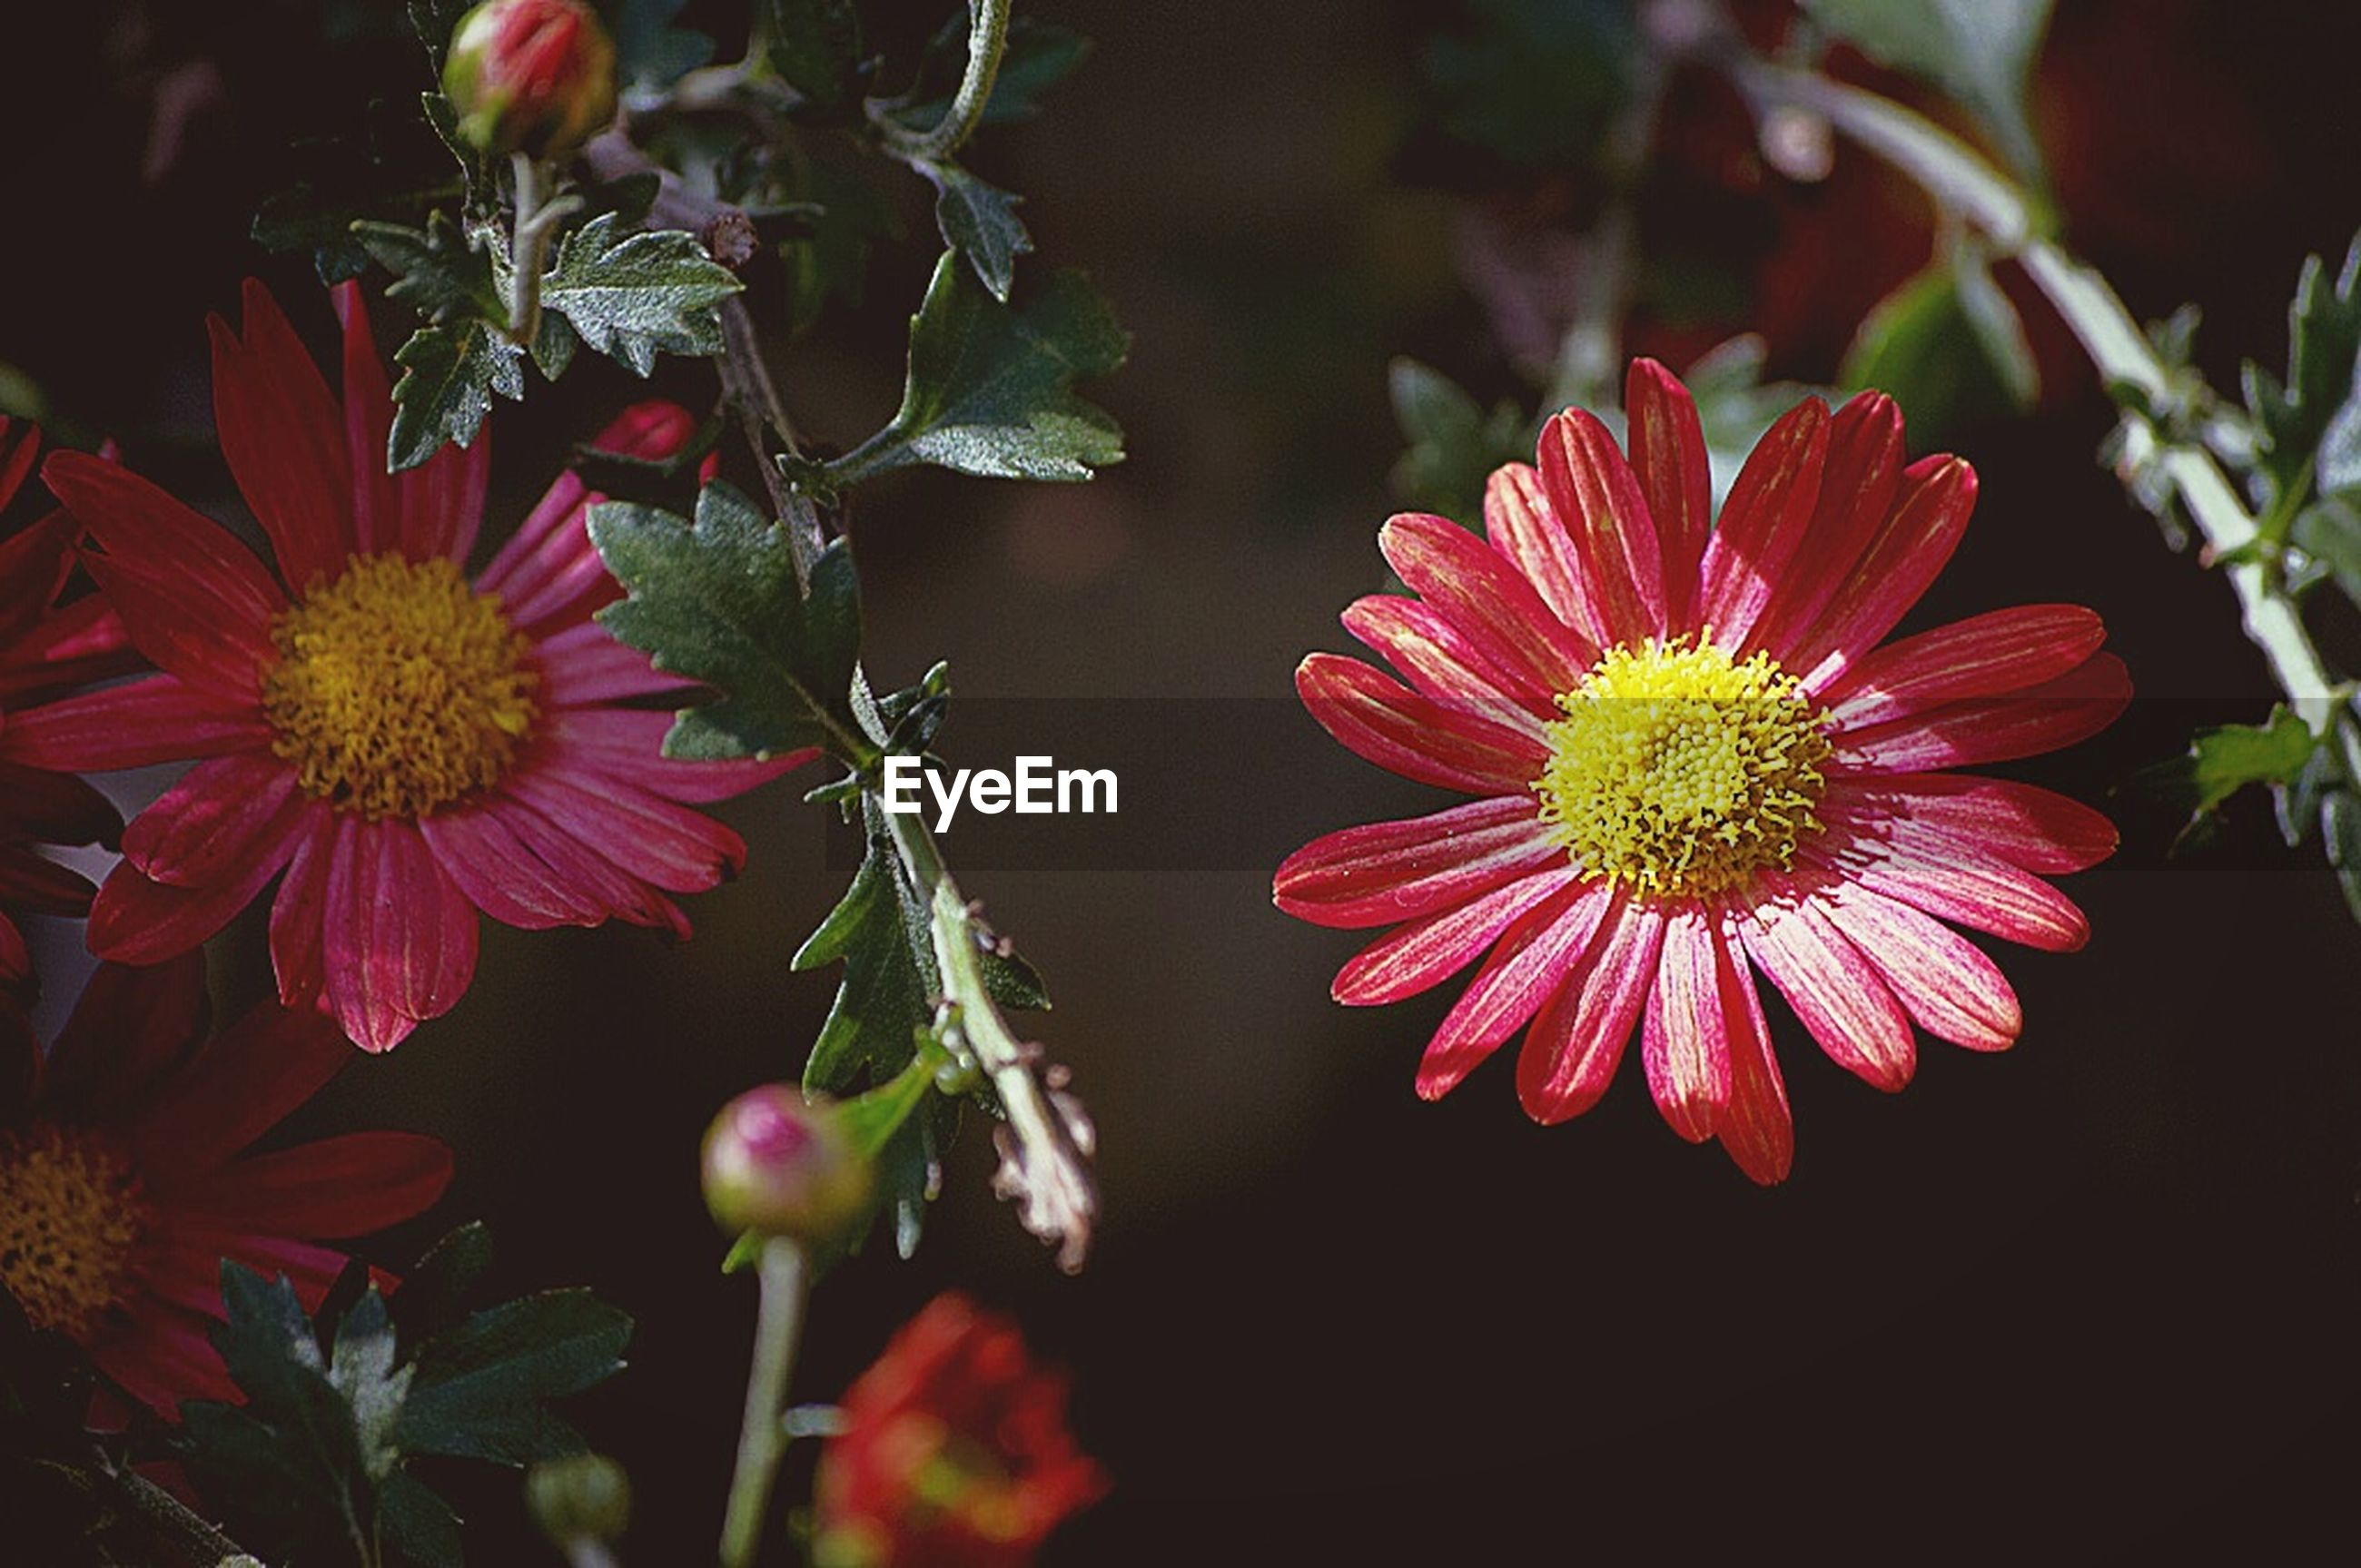 flower, freshness, petal, flower head, fragility, growth, red, beauty in nature, blooming, pollen, close-up, nature, plant, pink color, high angle view, focus on foreground, in bloom, stamen, no people, outdoors